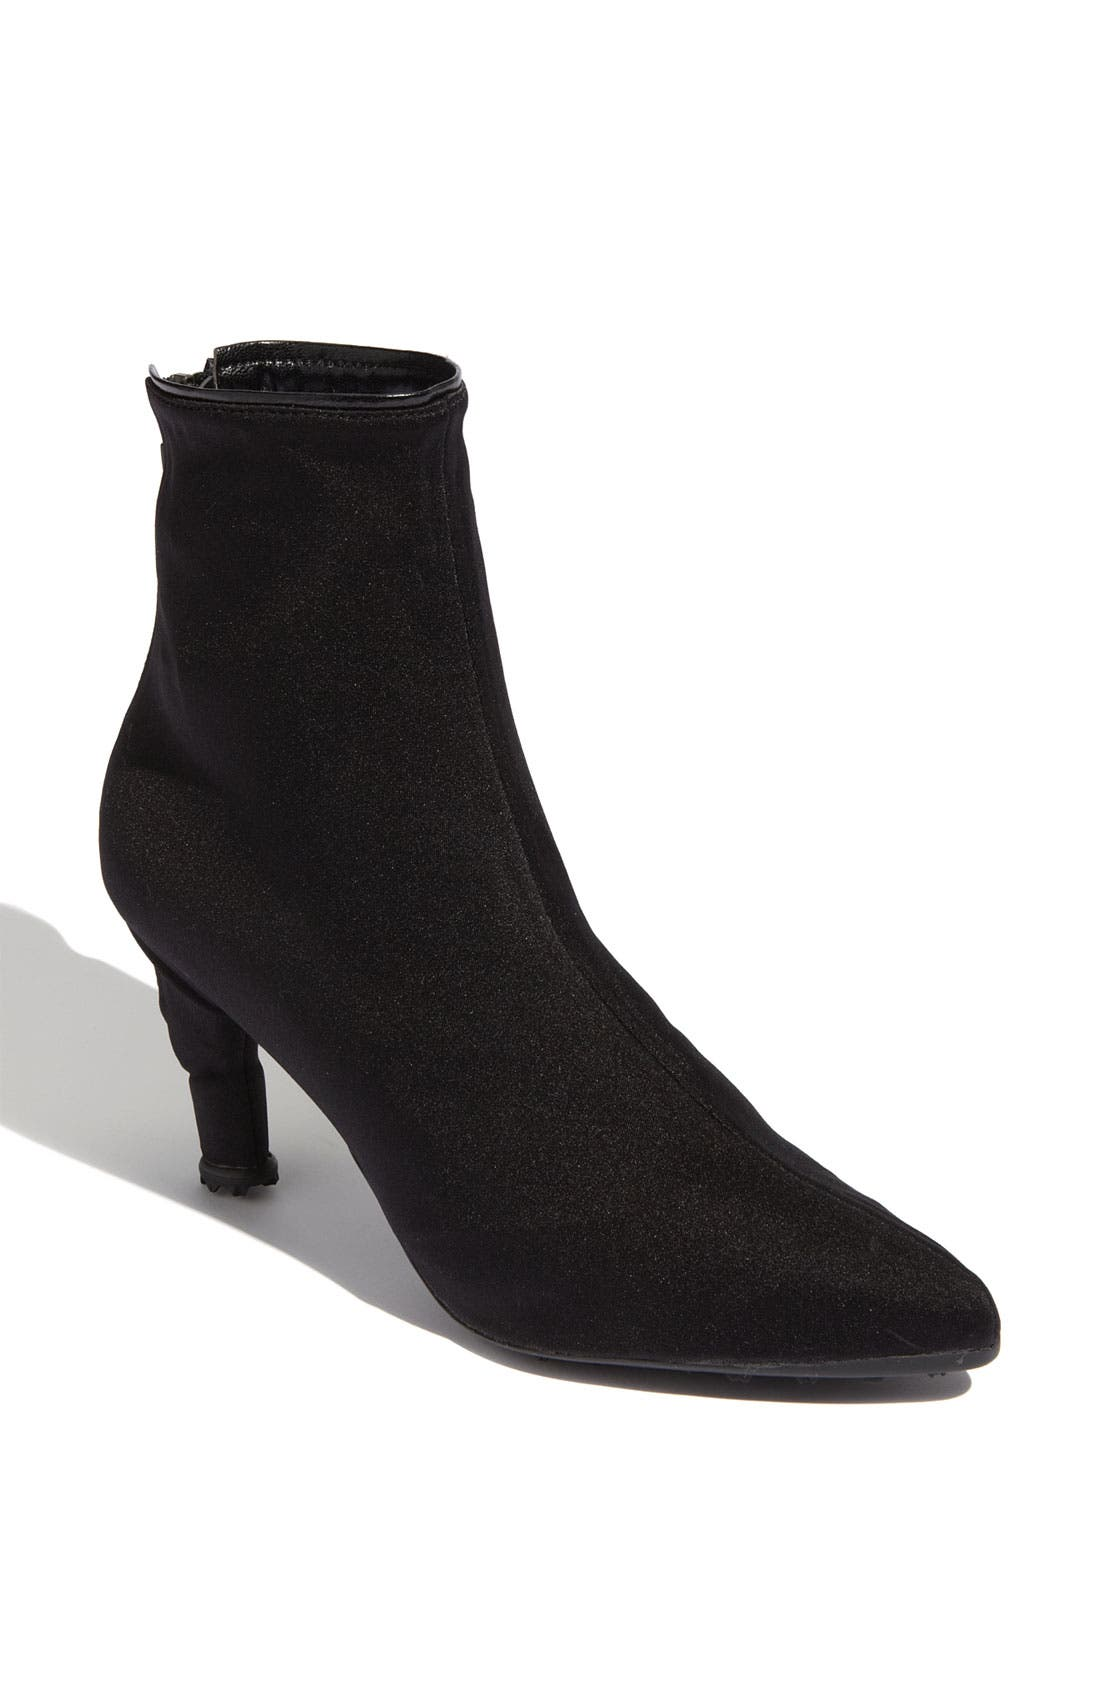 Main Image - Grace Carter 'High Pointy' Shoe Cover